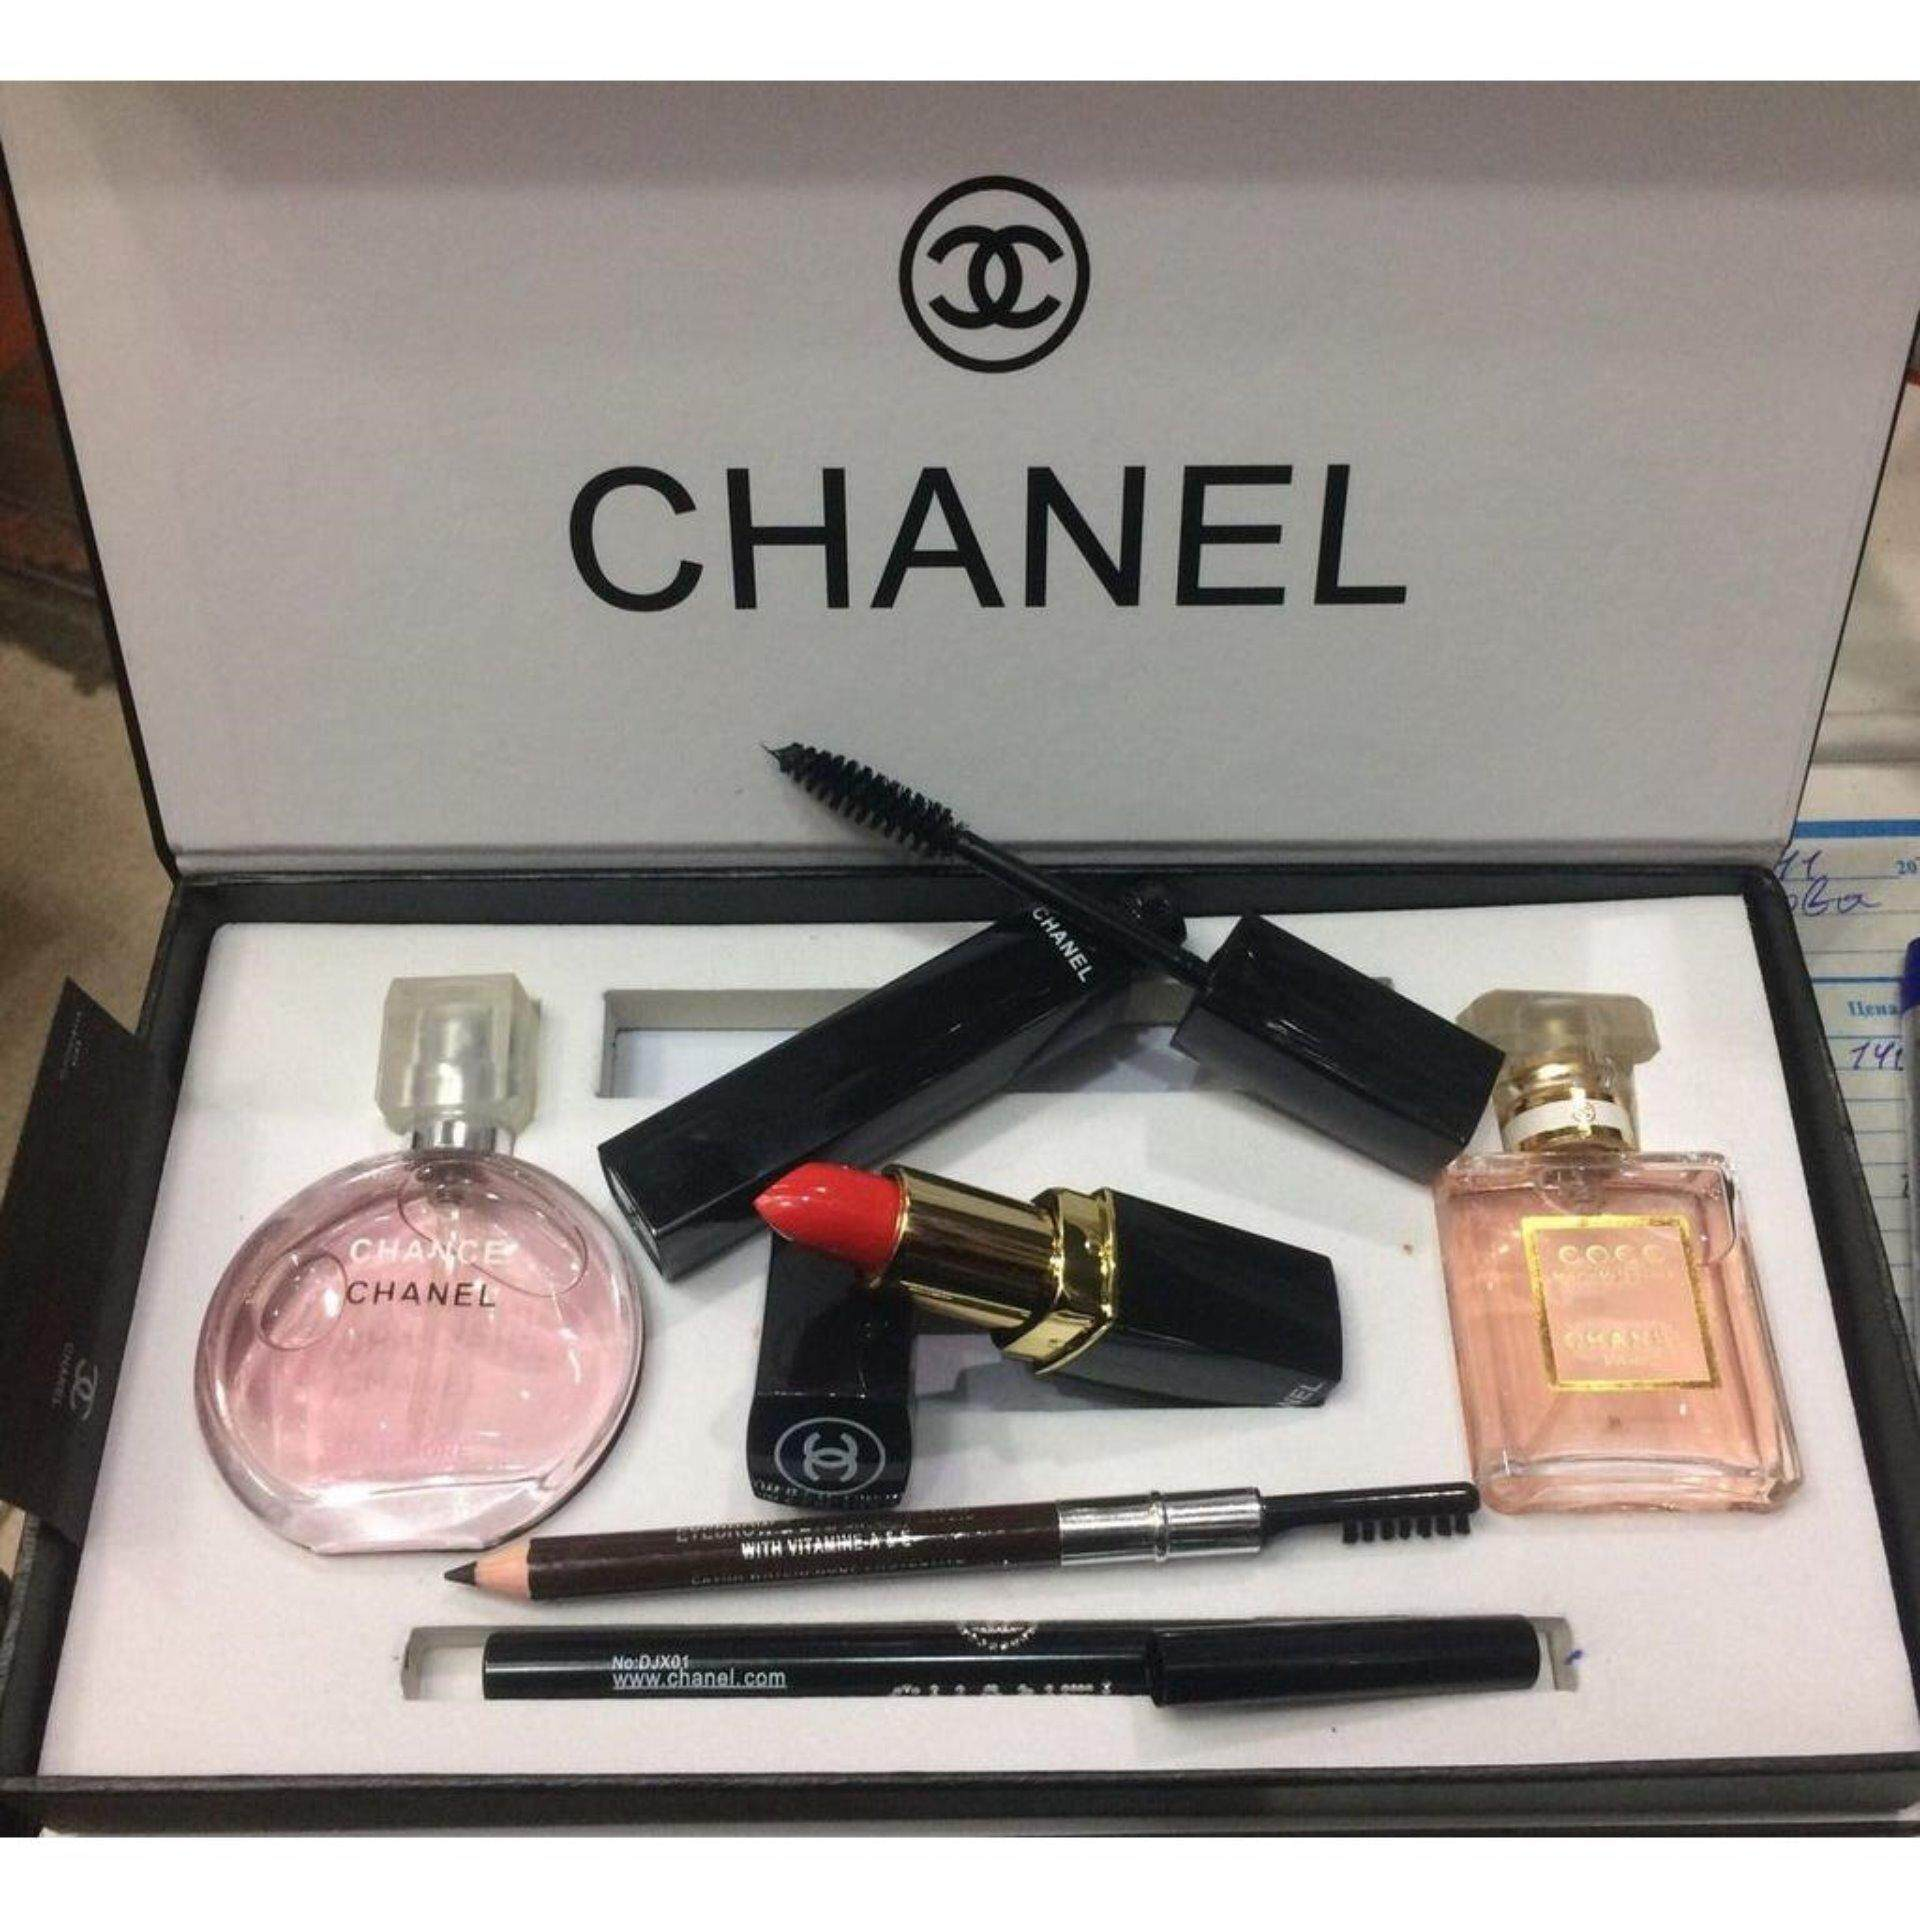 395052b11e1d4e Chanel 5 in 1 Limited Edition Gift set- Chance Chanel 15ml Perfume , Coco  Madmosile 15ml Perfume , Mascara , Eyeliner Pencil Lipstick